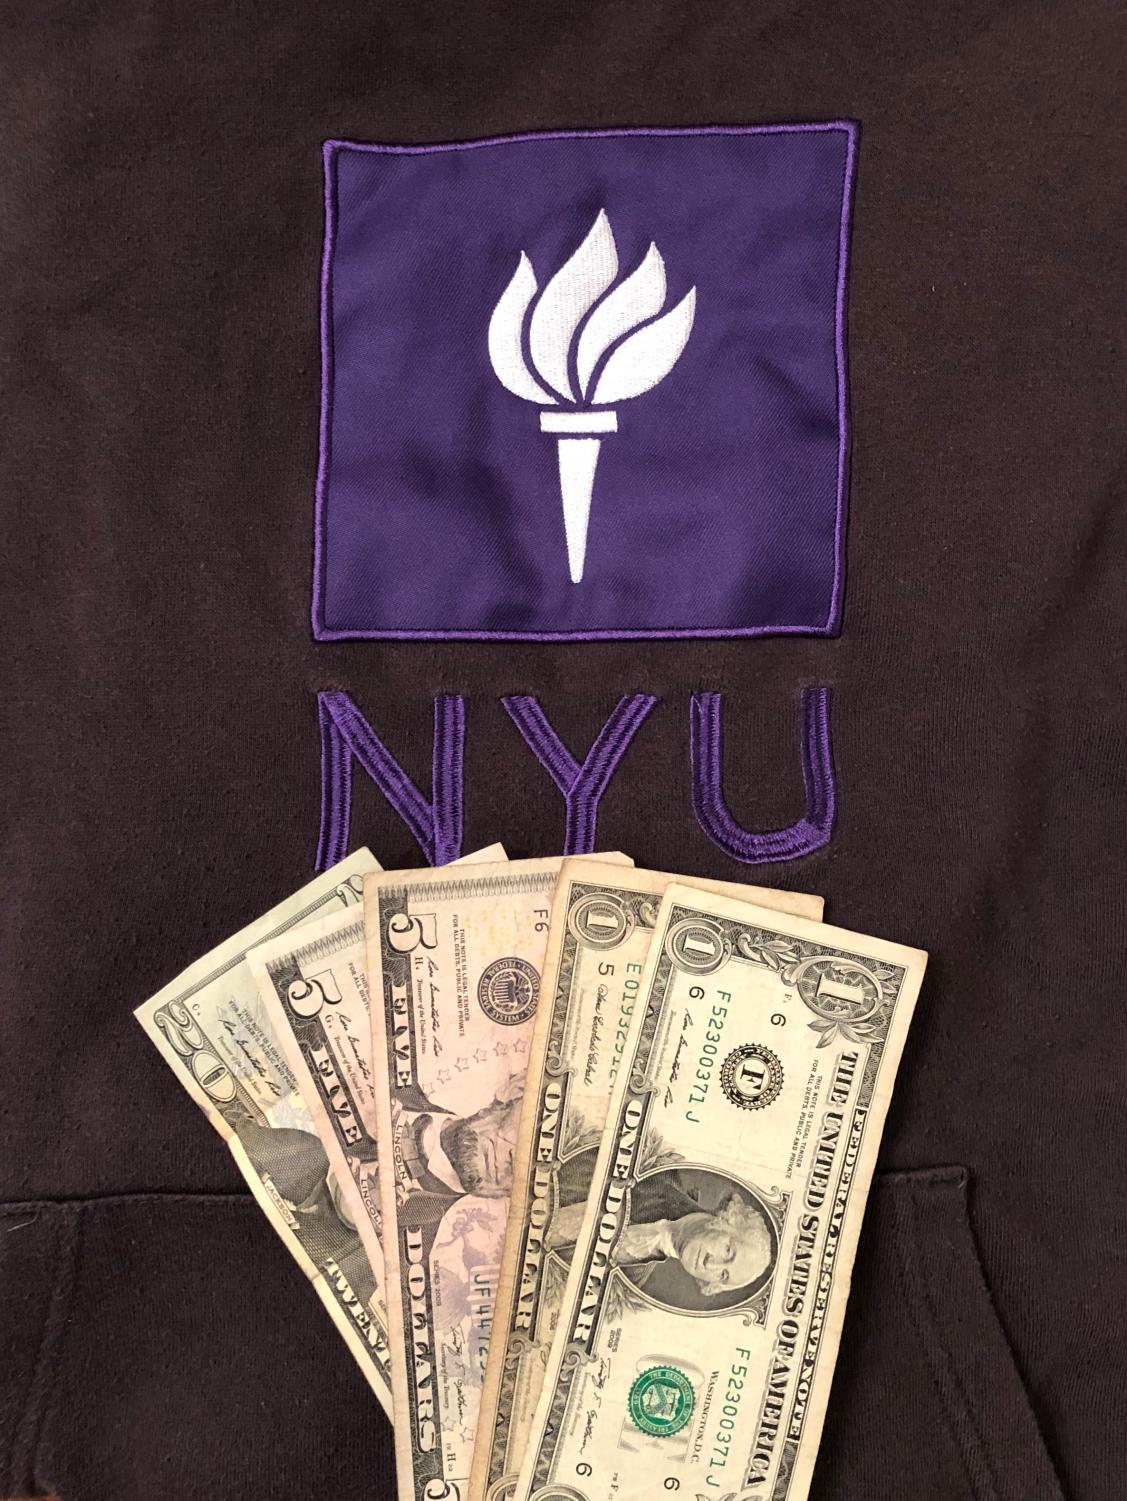 Money matters! NYU announces free tuition for medical school students.